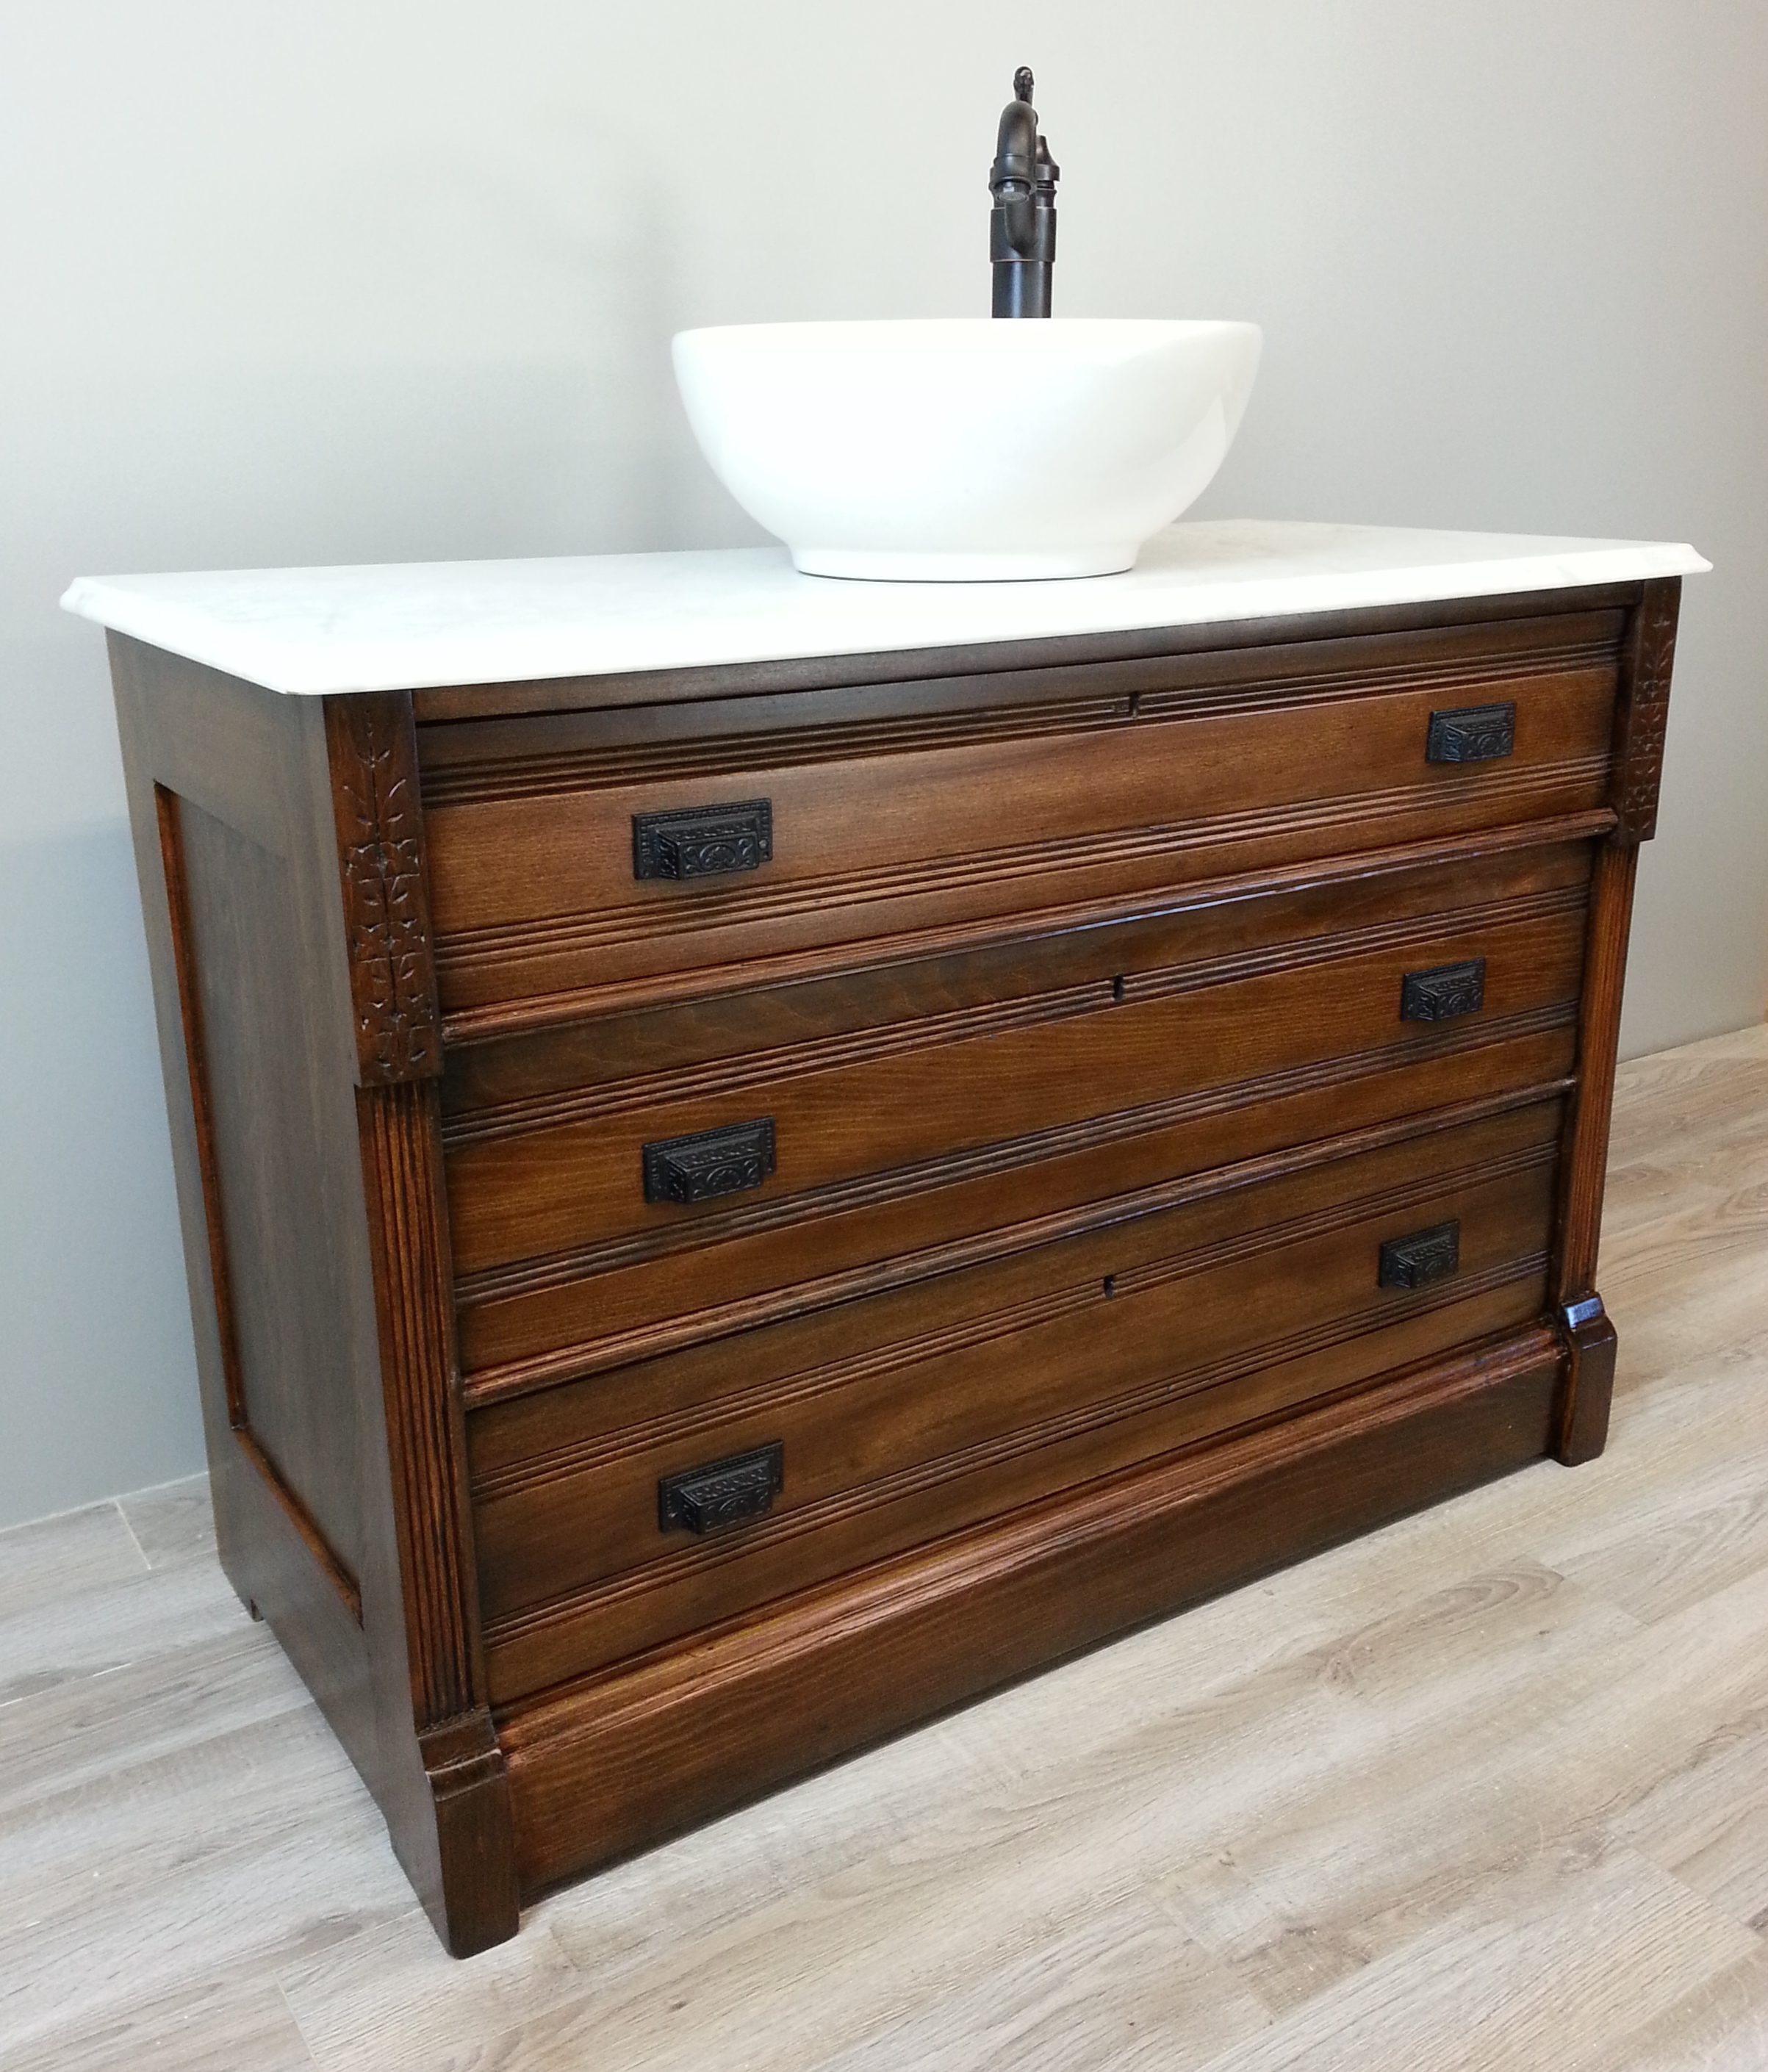 Antique Vessel Sink Vanity